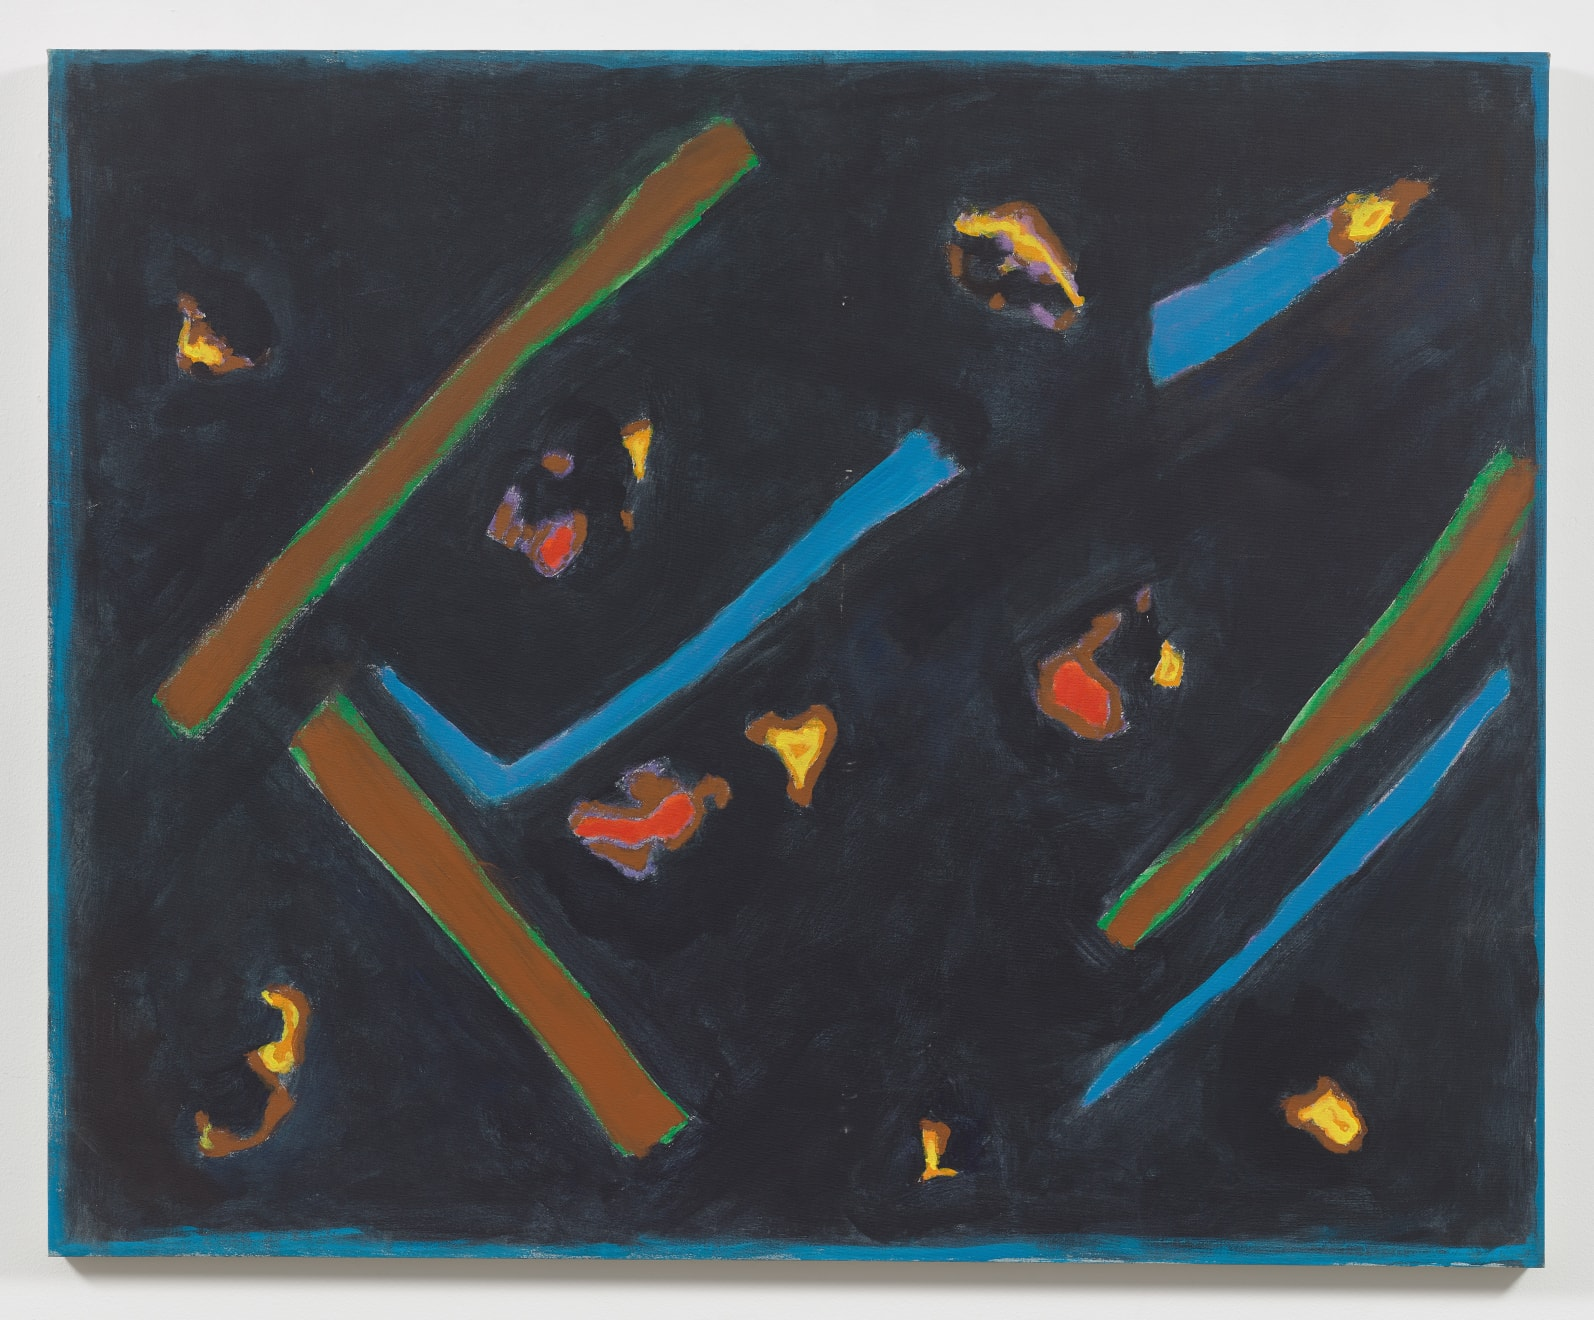 Betty Parsons Untitled, 1971 Acrylic on canvas 42h x 52w in (106.68h x 132.08w cm)